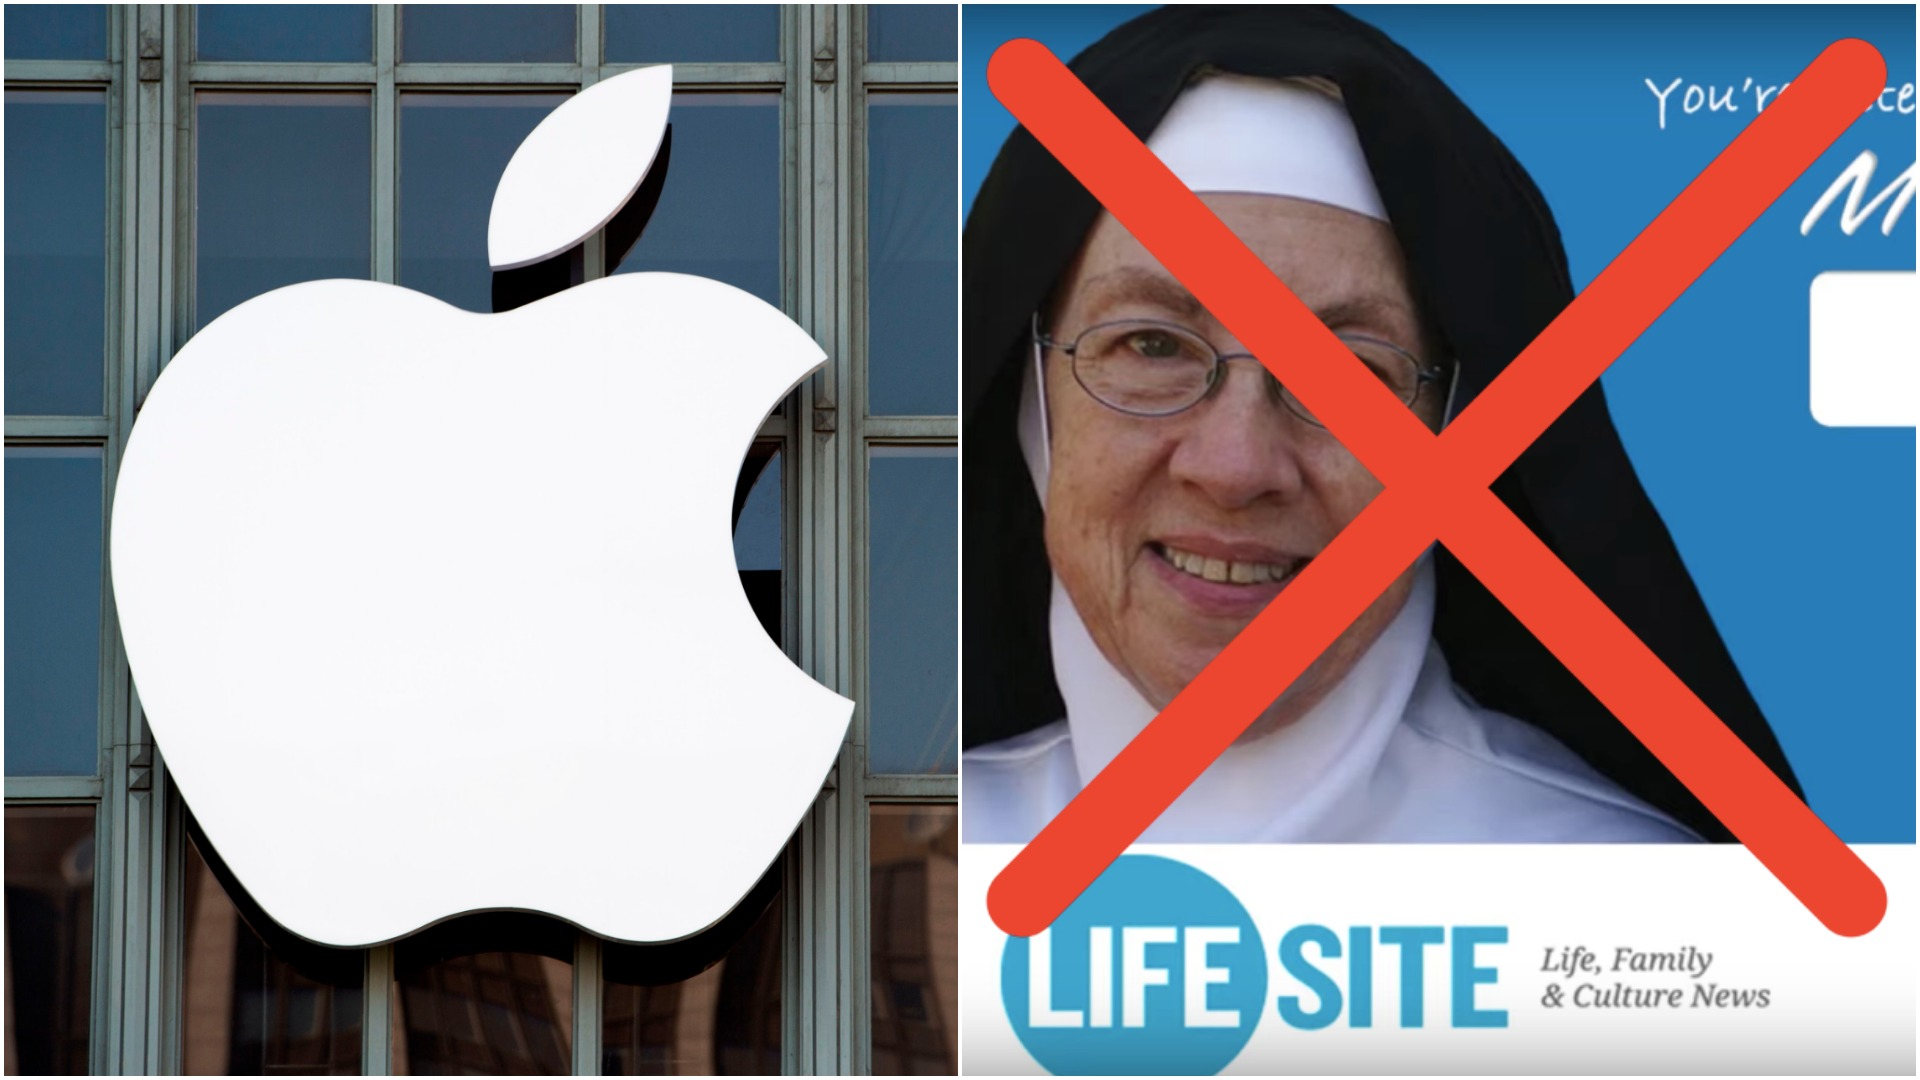 The apple logo (JOSH EDELSON/AFP/Getty Images) and an advertisement for Life Site New's Mother Miriam Live! overlayed with a red X. (LifeSite News/Youtube+Shutterstock)